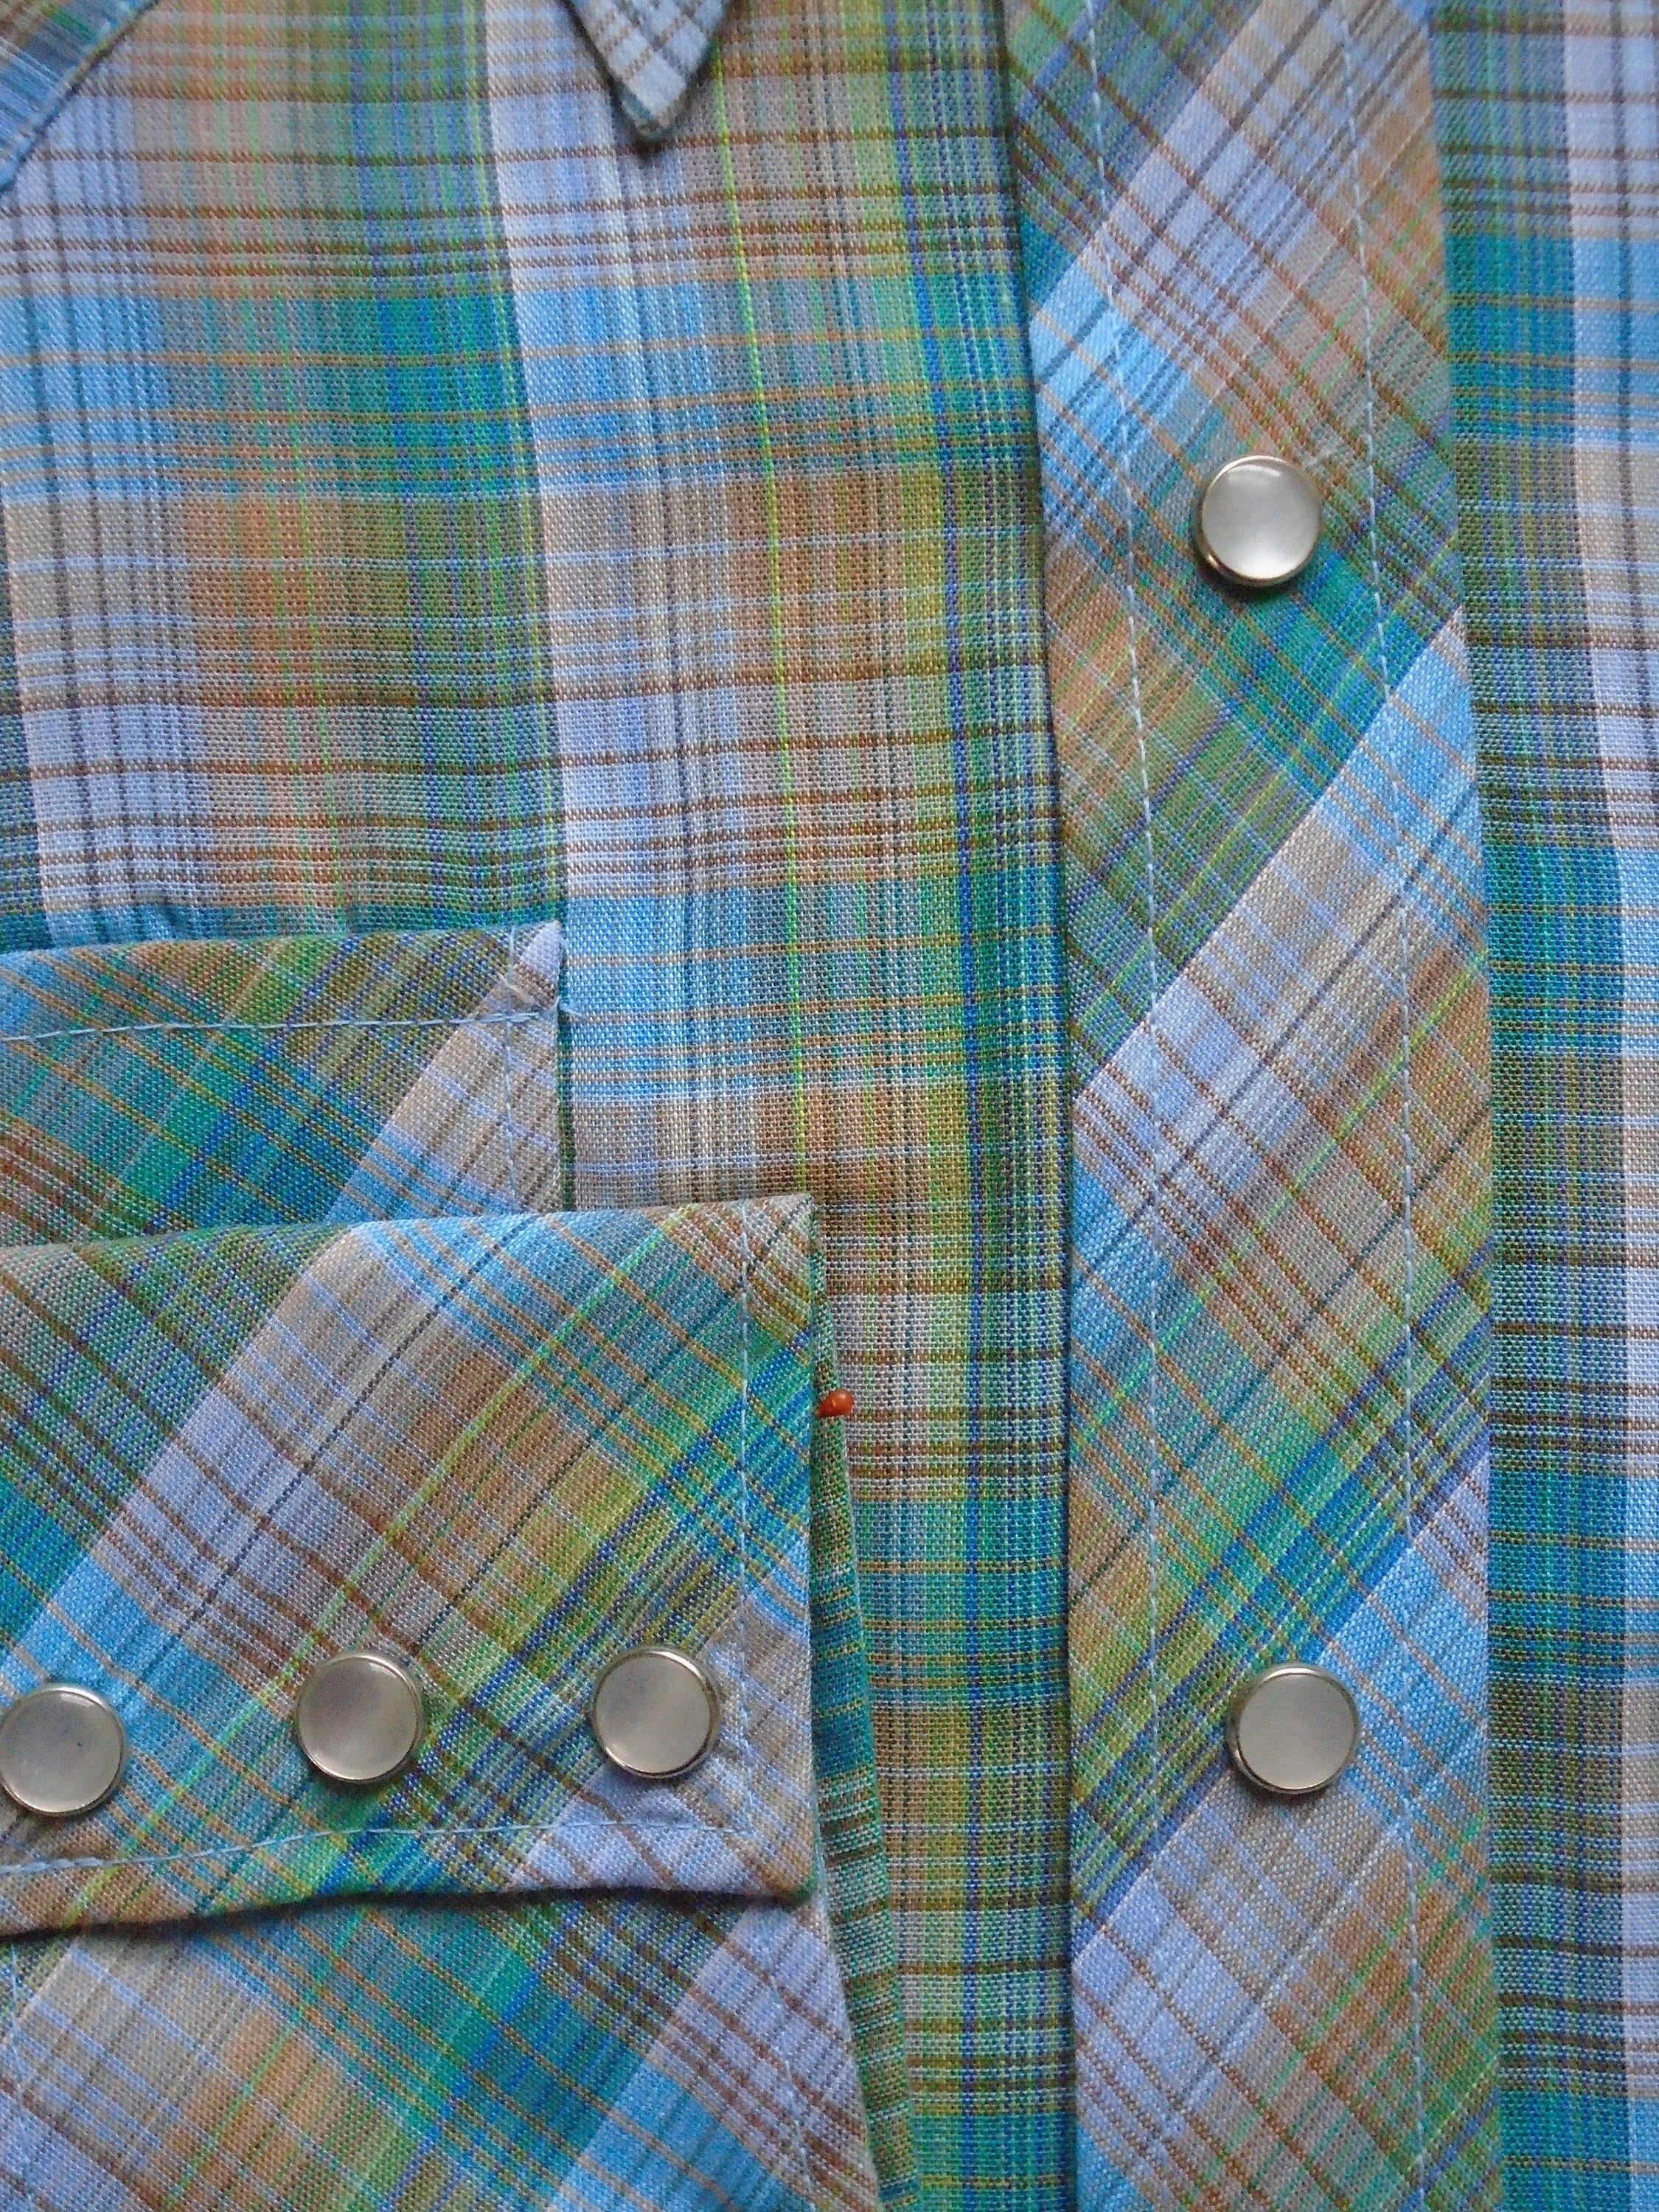 1970s Mens Shirt Styles – Vintage 70s Shirts for Guys New 1970S Western Plaid Mens Or Boys Retro Shirt Old Stock Vintage Button Down Ranch Blouse Blue Green Mens Size Small Kids Xl 16 $0.00 AT vintagedancer.com